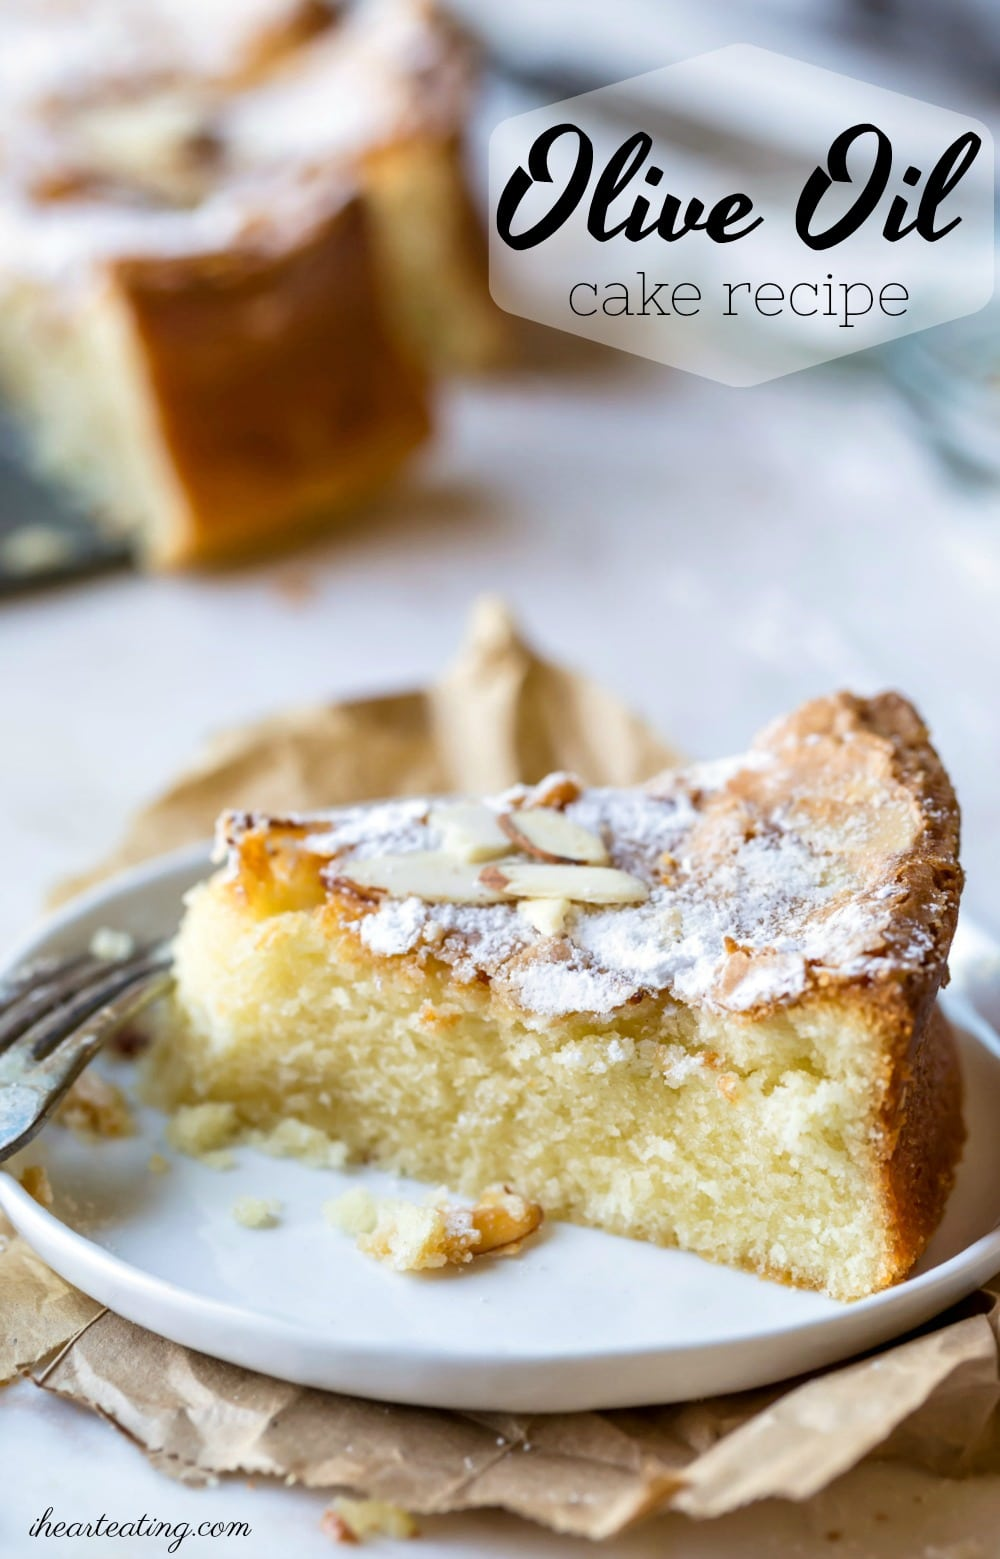 Moist olive oil cake is an easy, one-bowl cake that's a great alternative to pound cake. This simple cake recipe is made with pantry staples and takes almost no prep work to make.